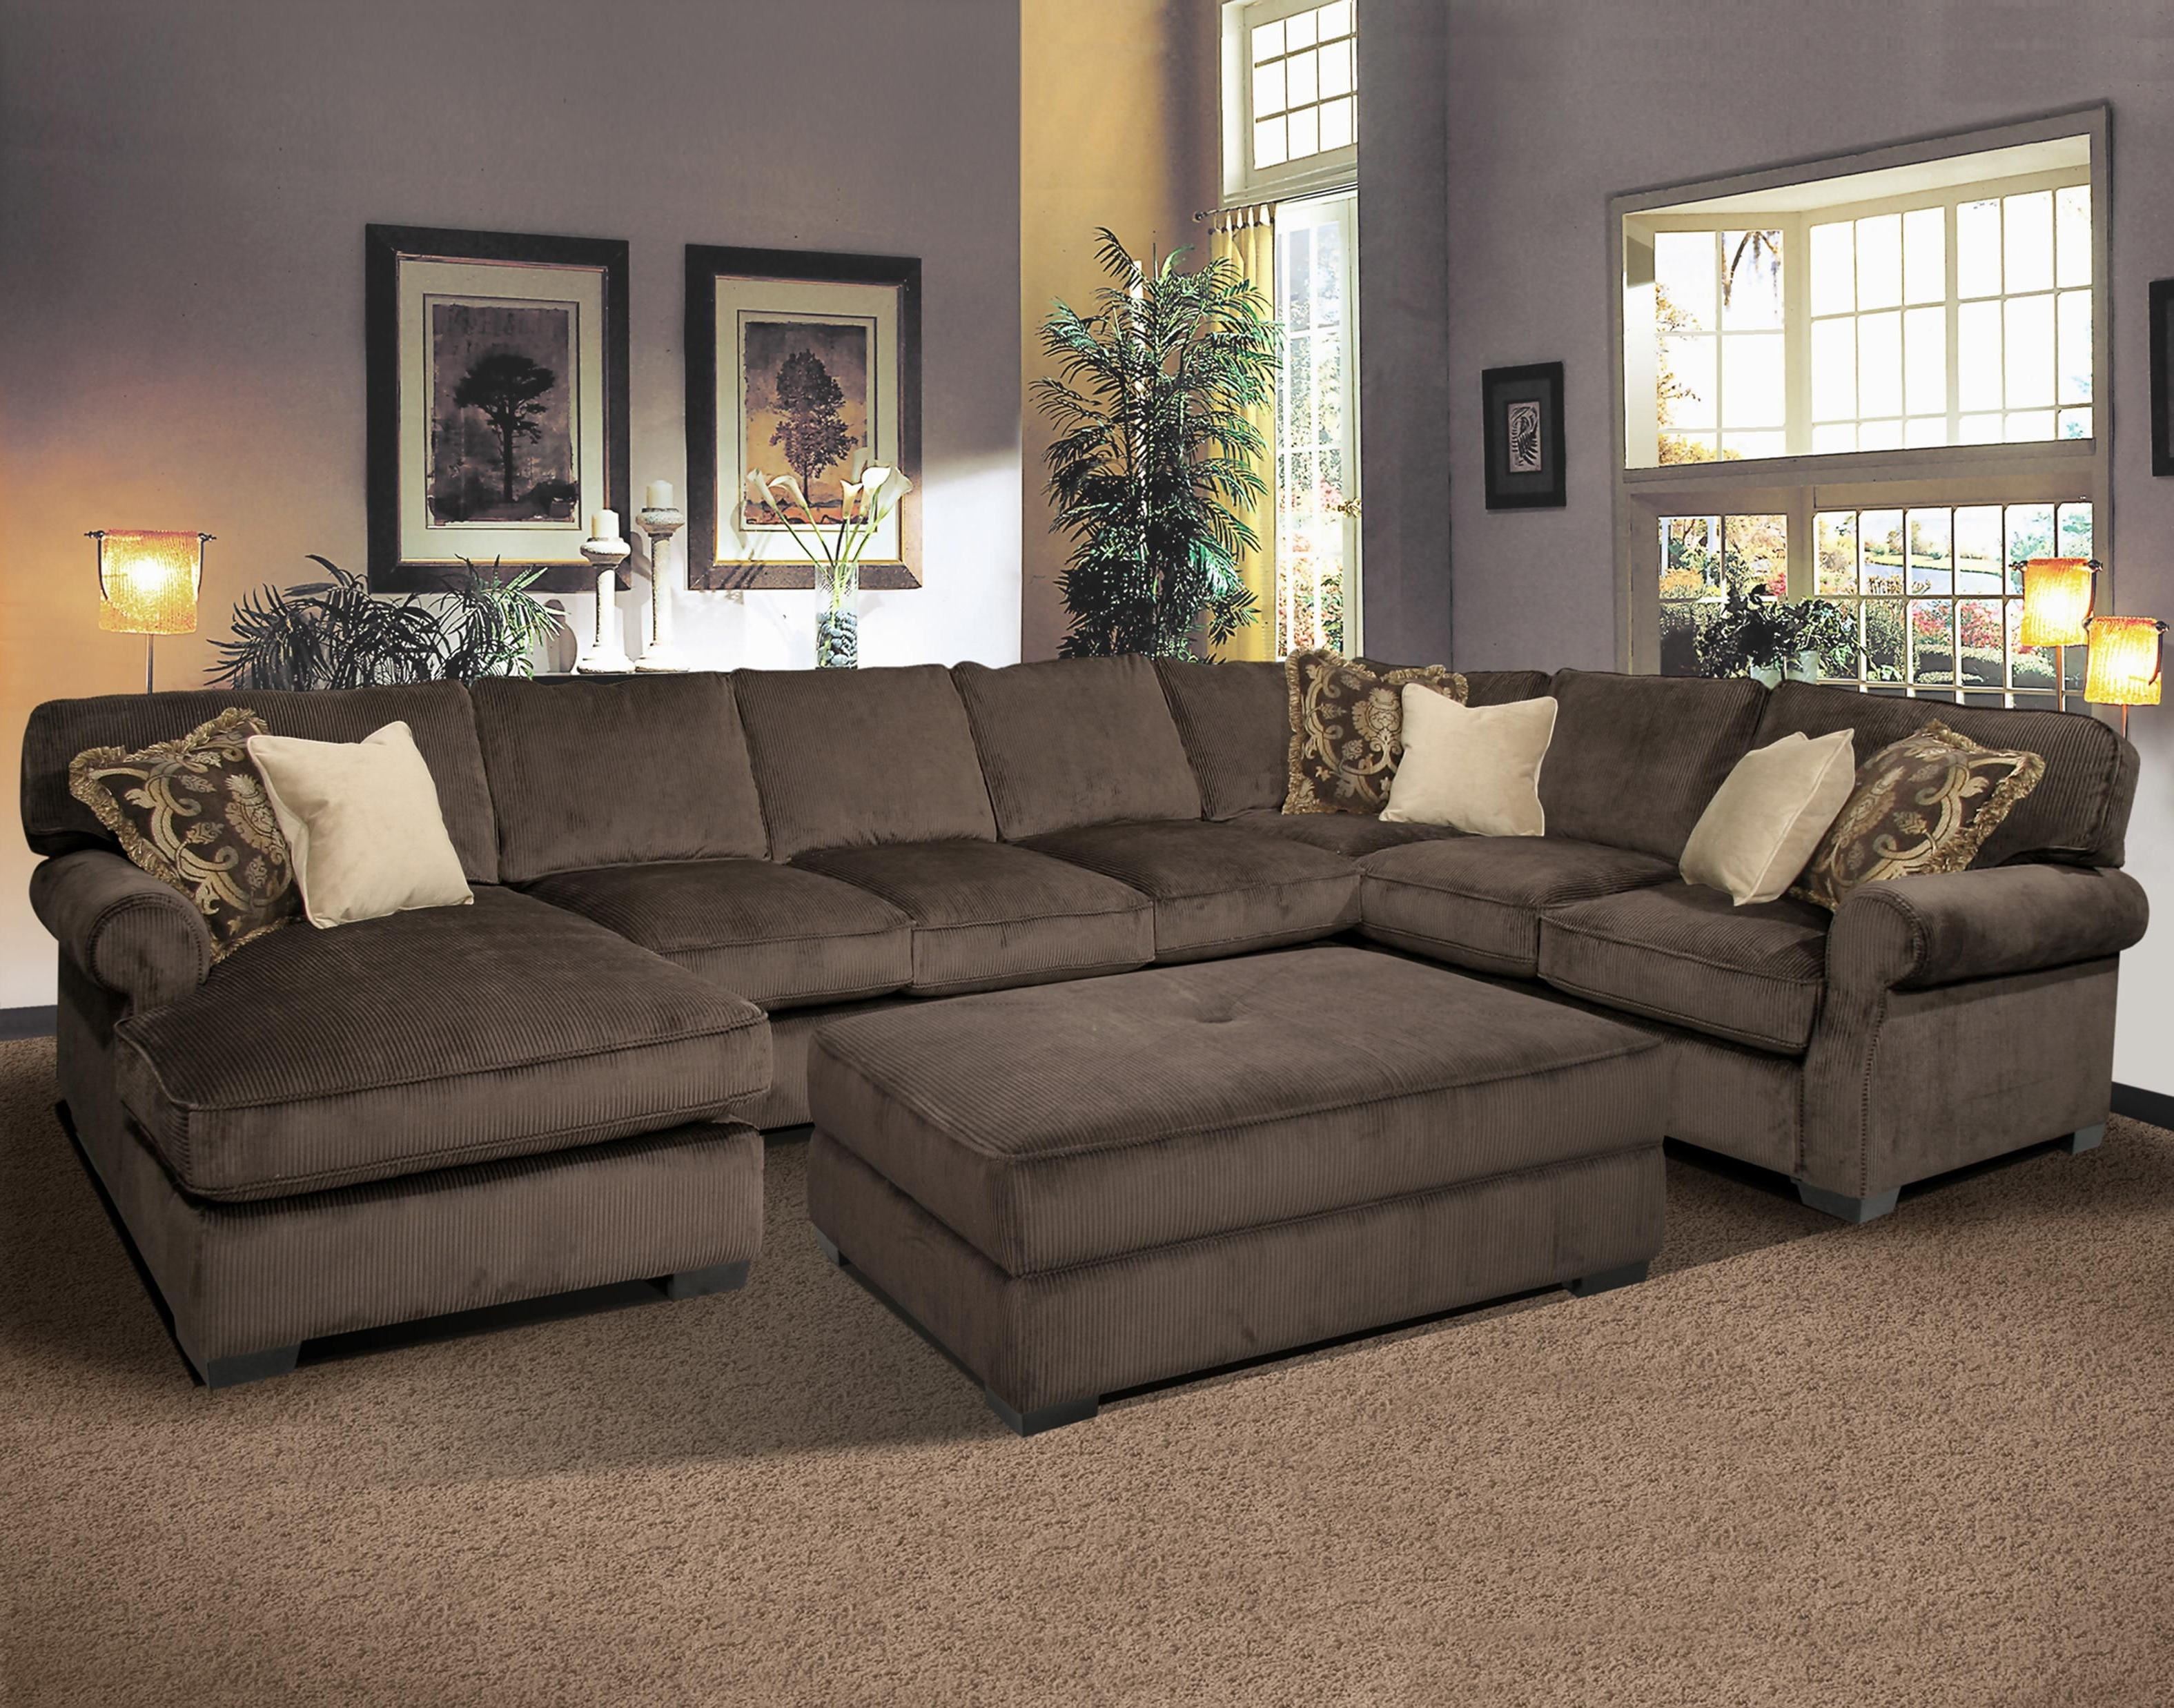 Widely Used Big And Comfy Grand Island Large, 7 Seat Sectional Sofa With Right Inside Huge Sofas (View 3 of 15)